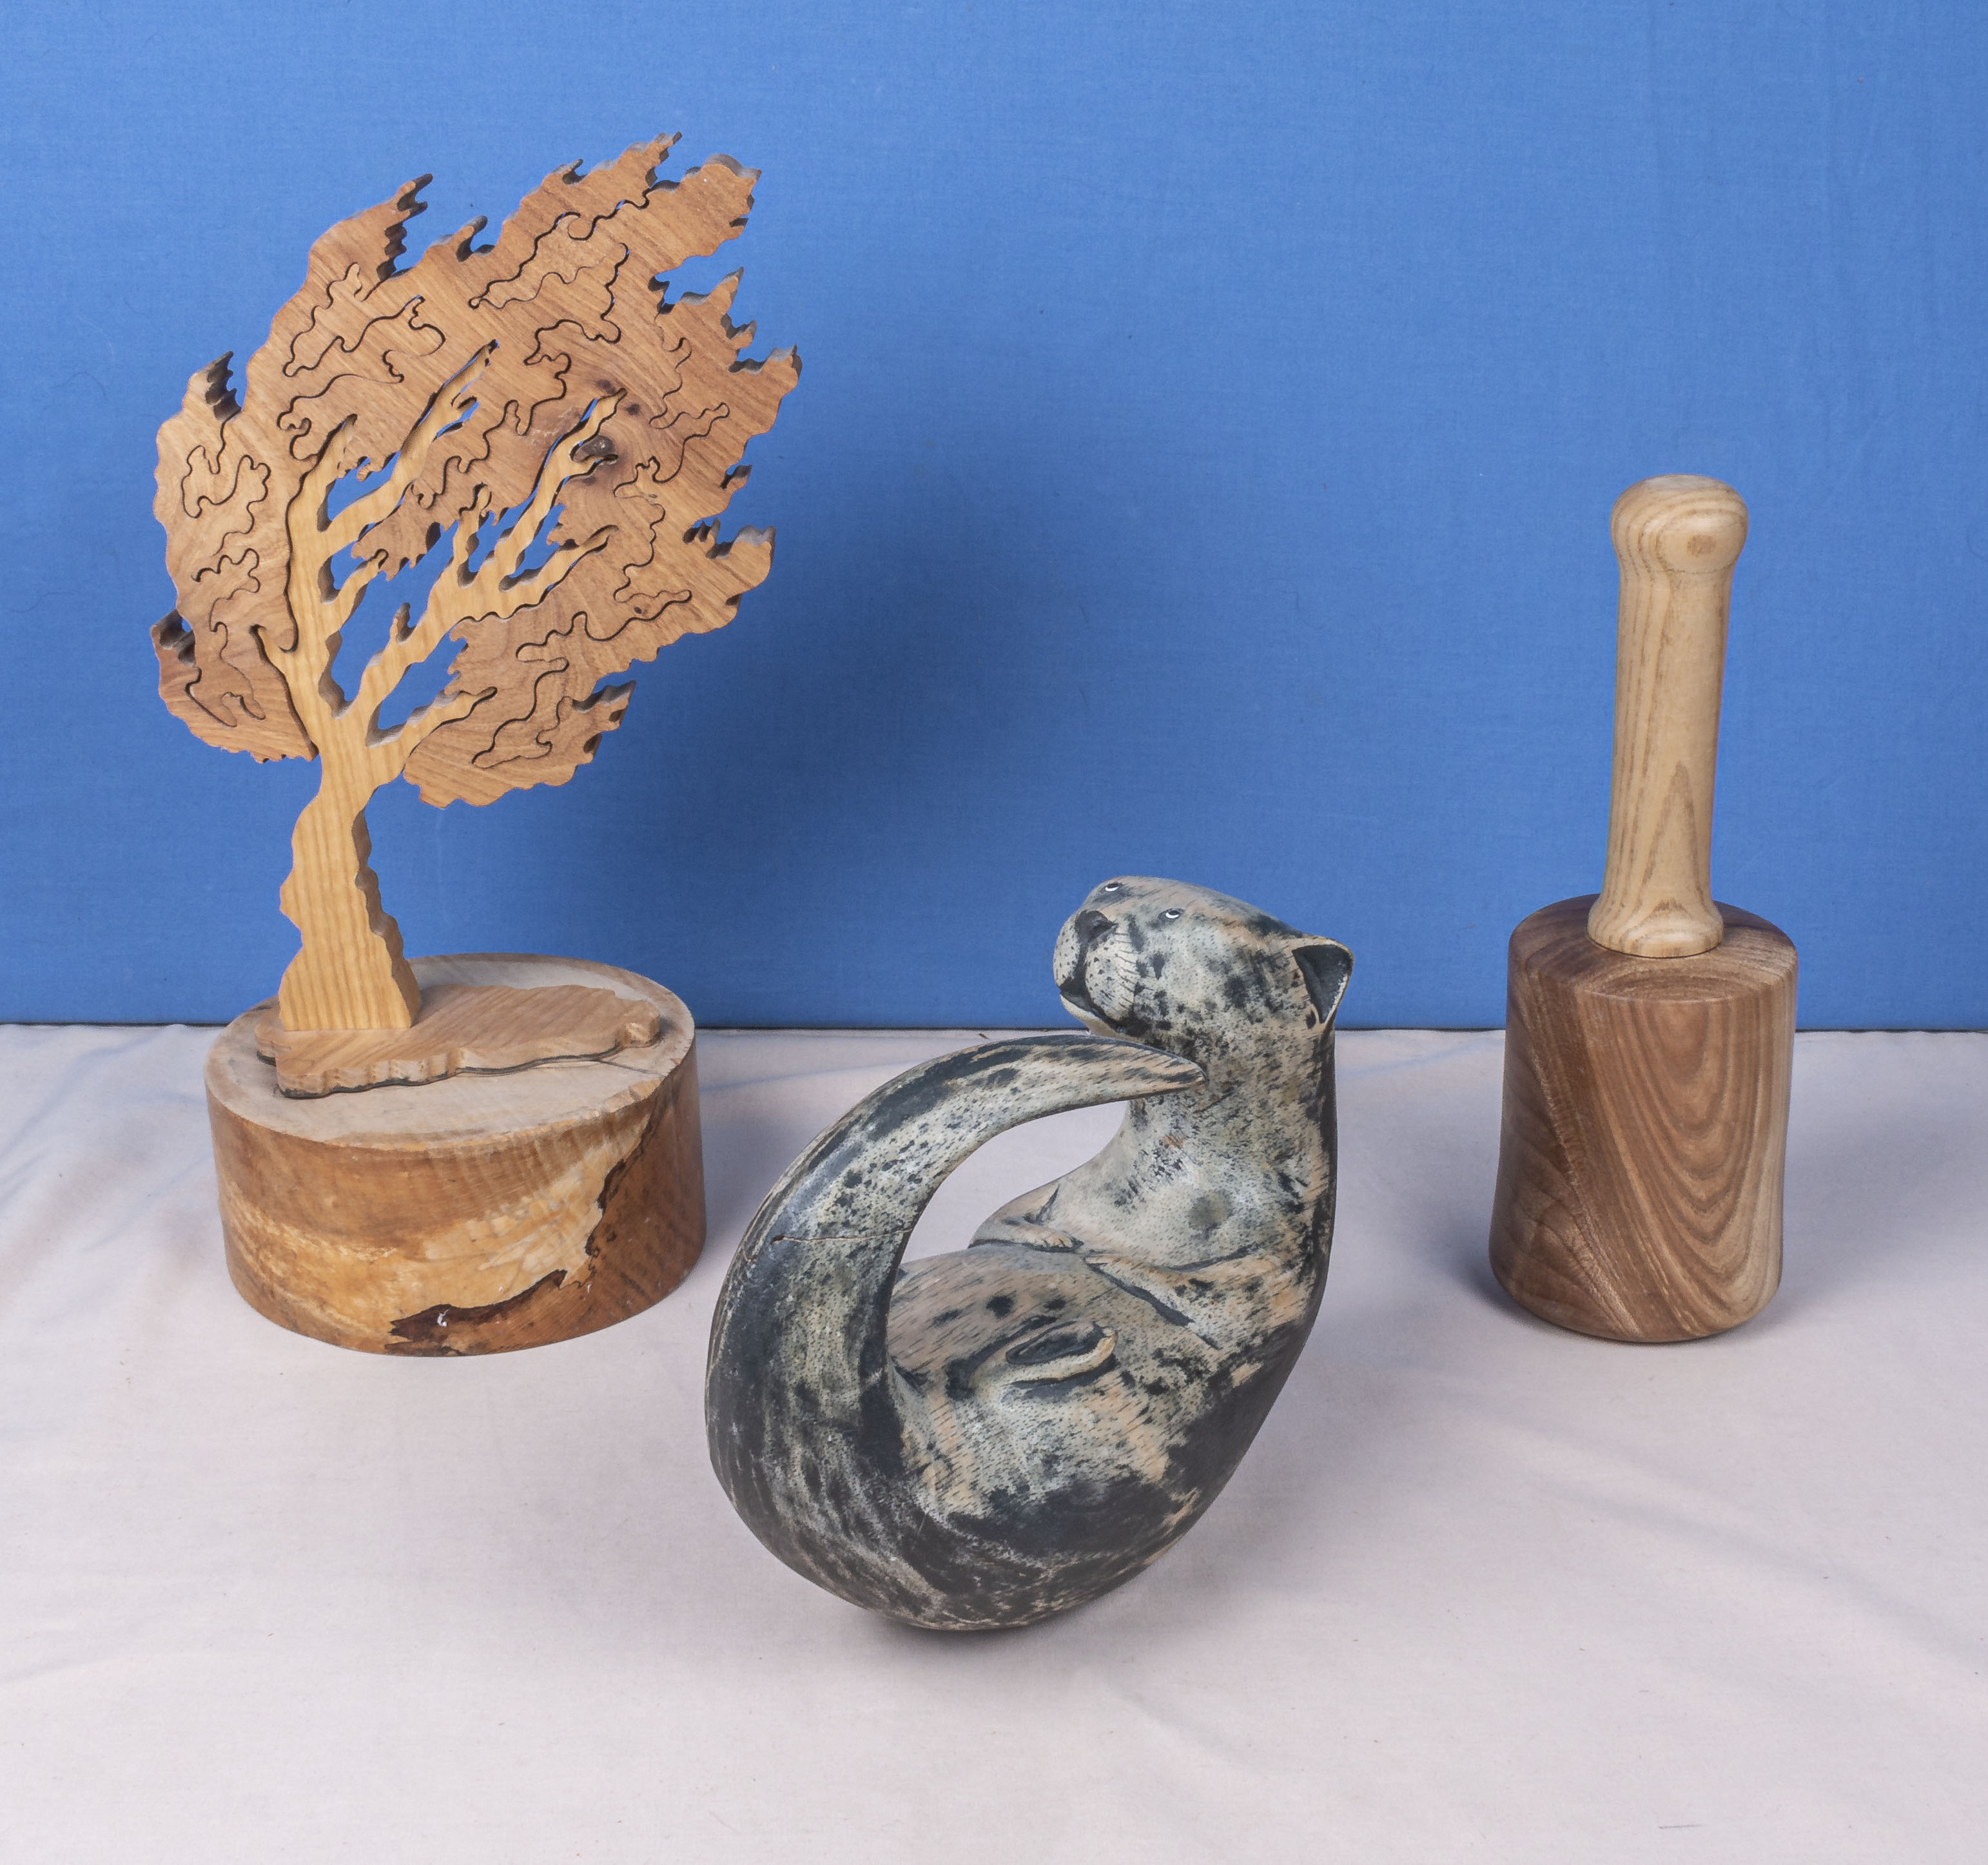 Lot 12 - A wooden puzzle tree, mallet and a cat